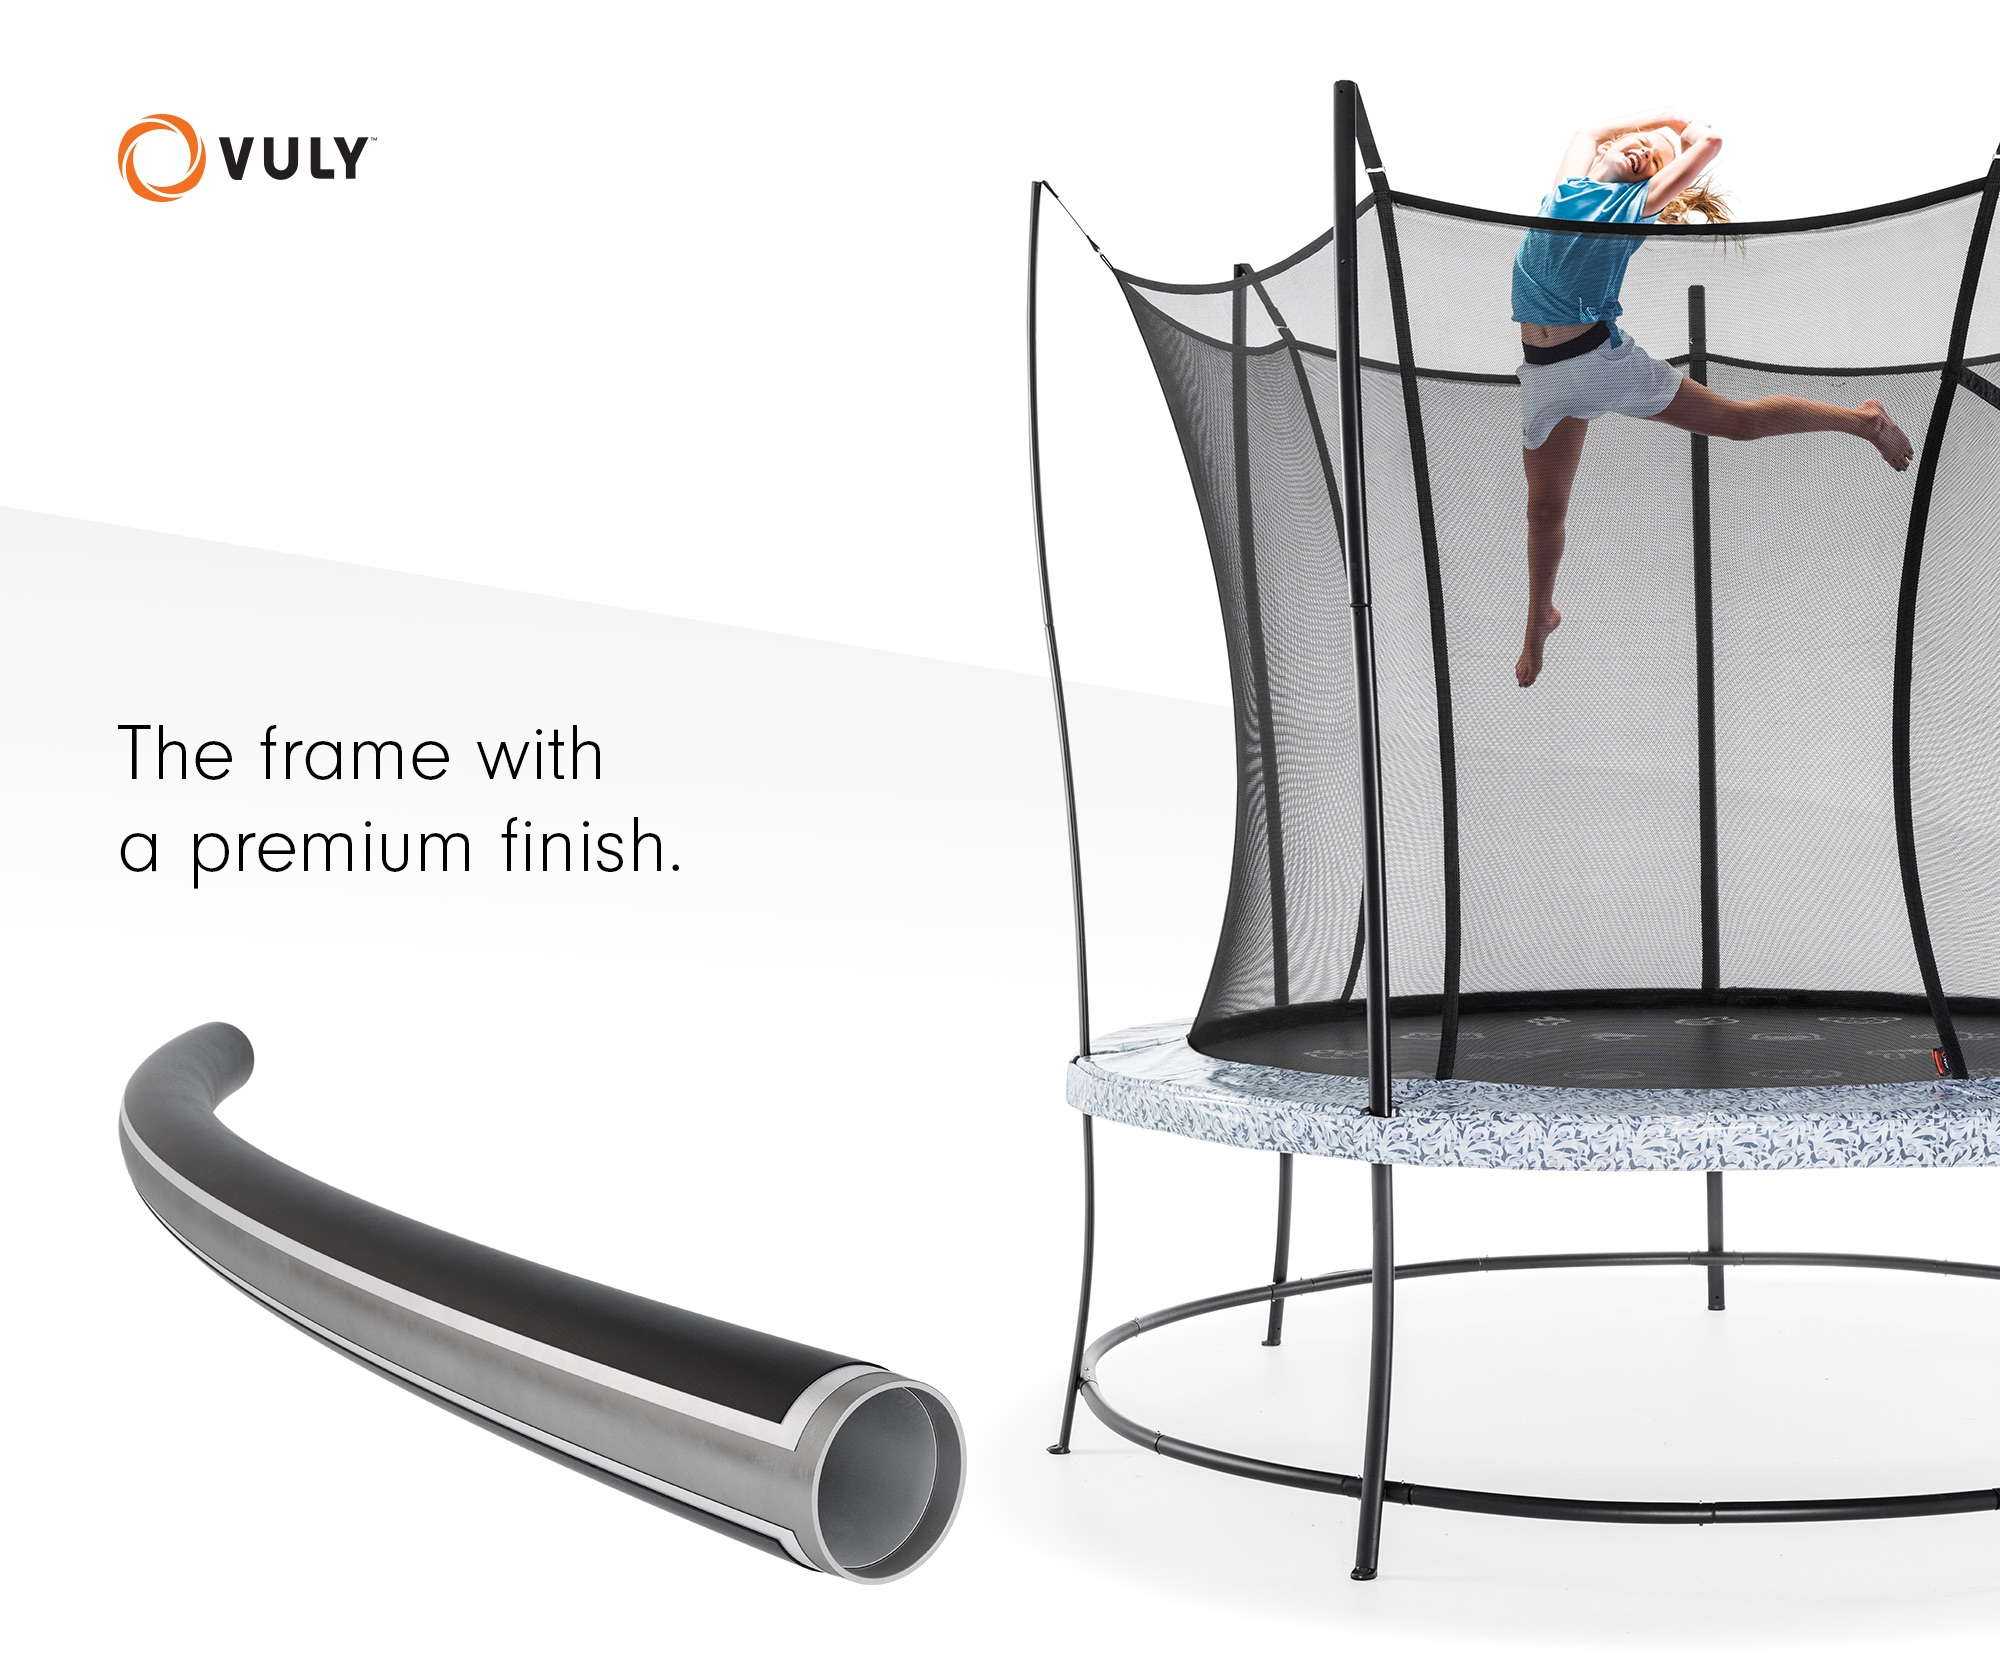 vuly lift shade cover instructions